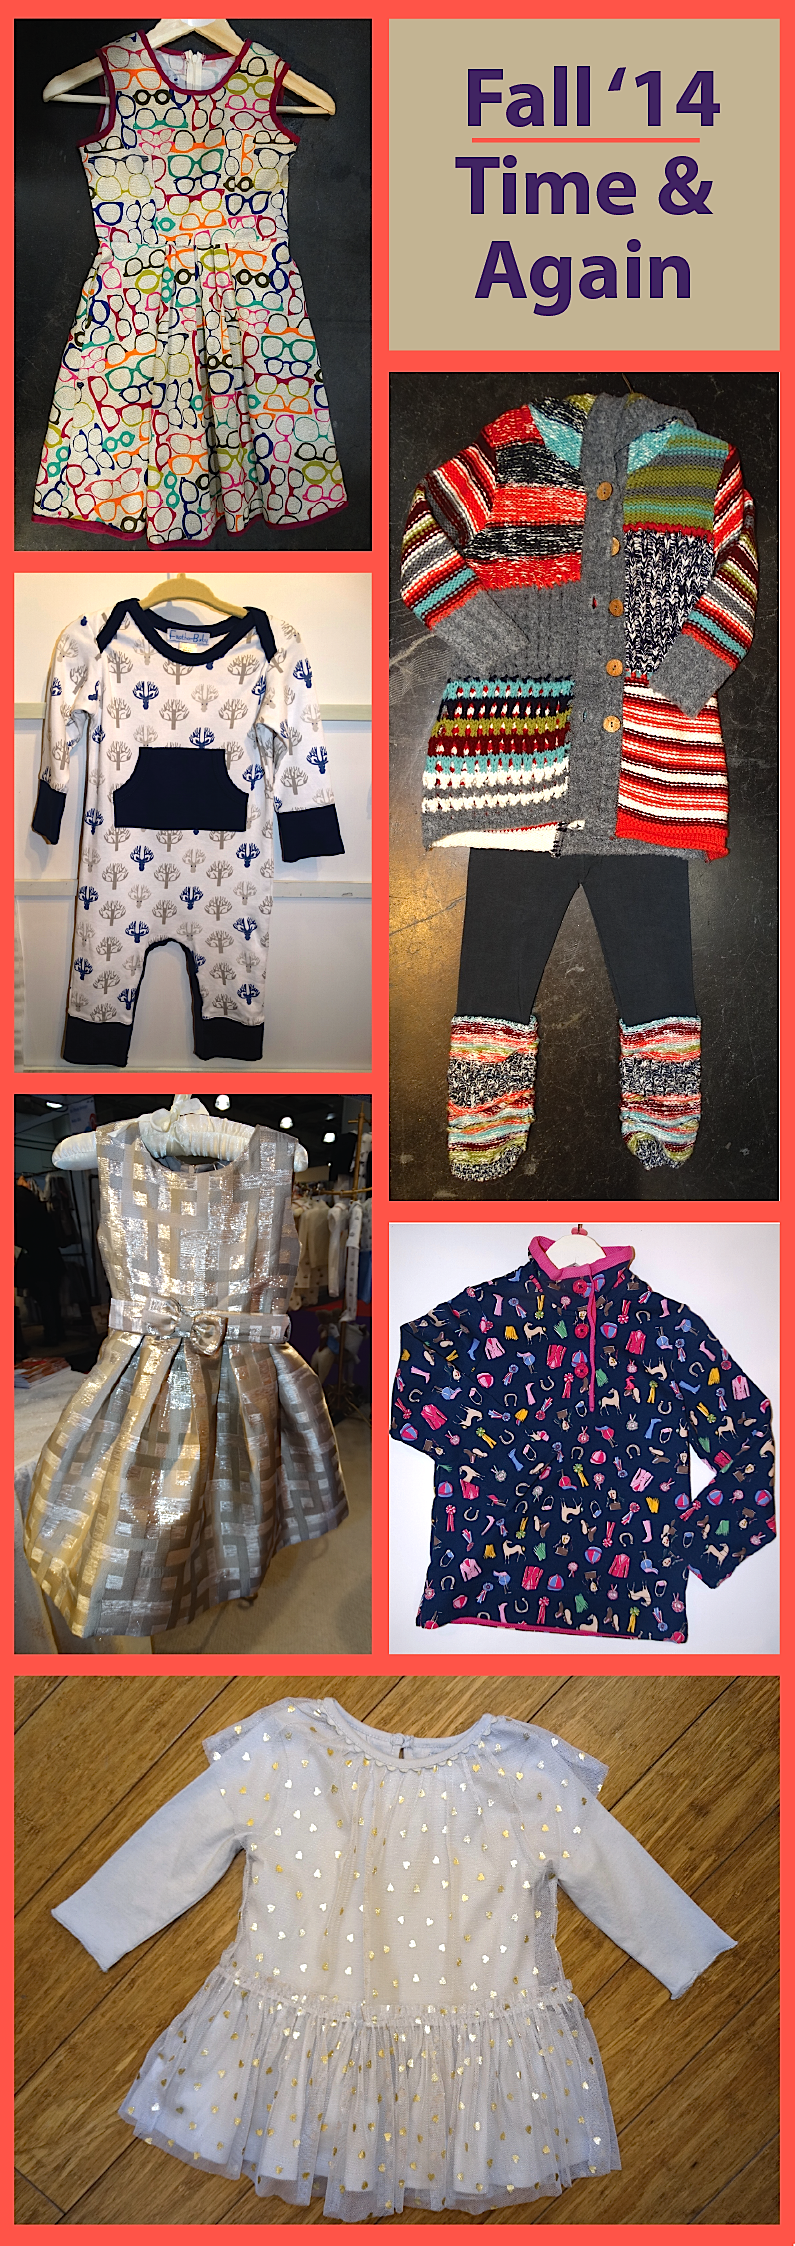 Every line has them, those items or styles stores clamor for season after season. Here's a look at a few styles that remain top sellers: fit-and-flare dresses from Fiveloaves Twofish, Feather Baby's kangaroo-pocket playsuits, Mimi & Maggie's mixed media sweaters, party dresses from Rachel Riley, equestrian themes from Little Joule and tulle dresses from Stella McCartney.